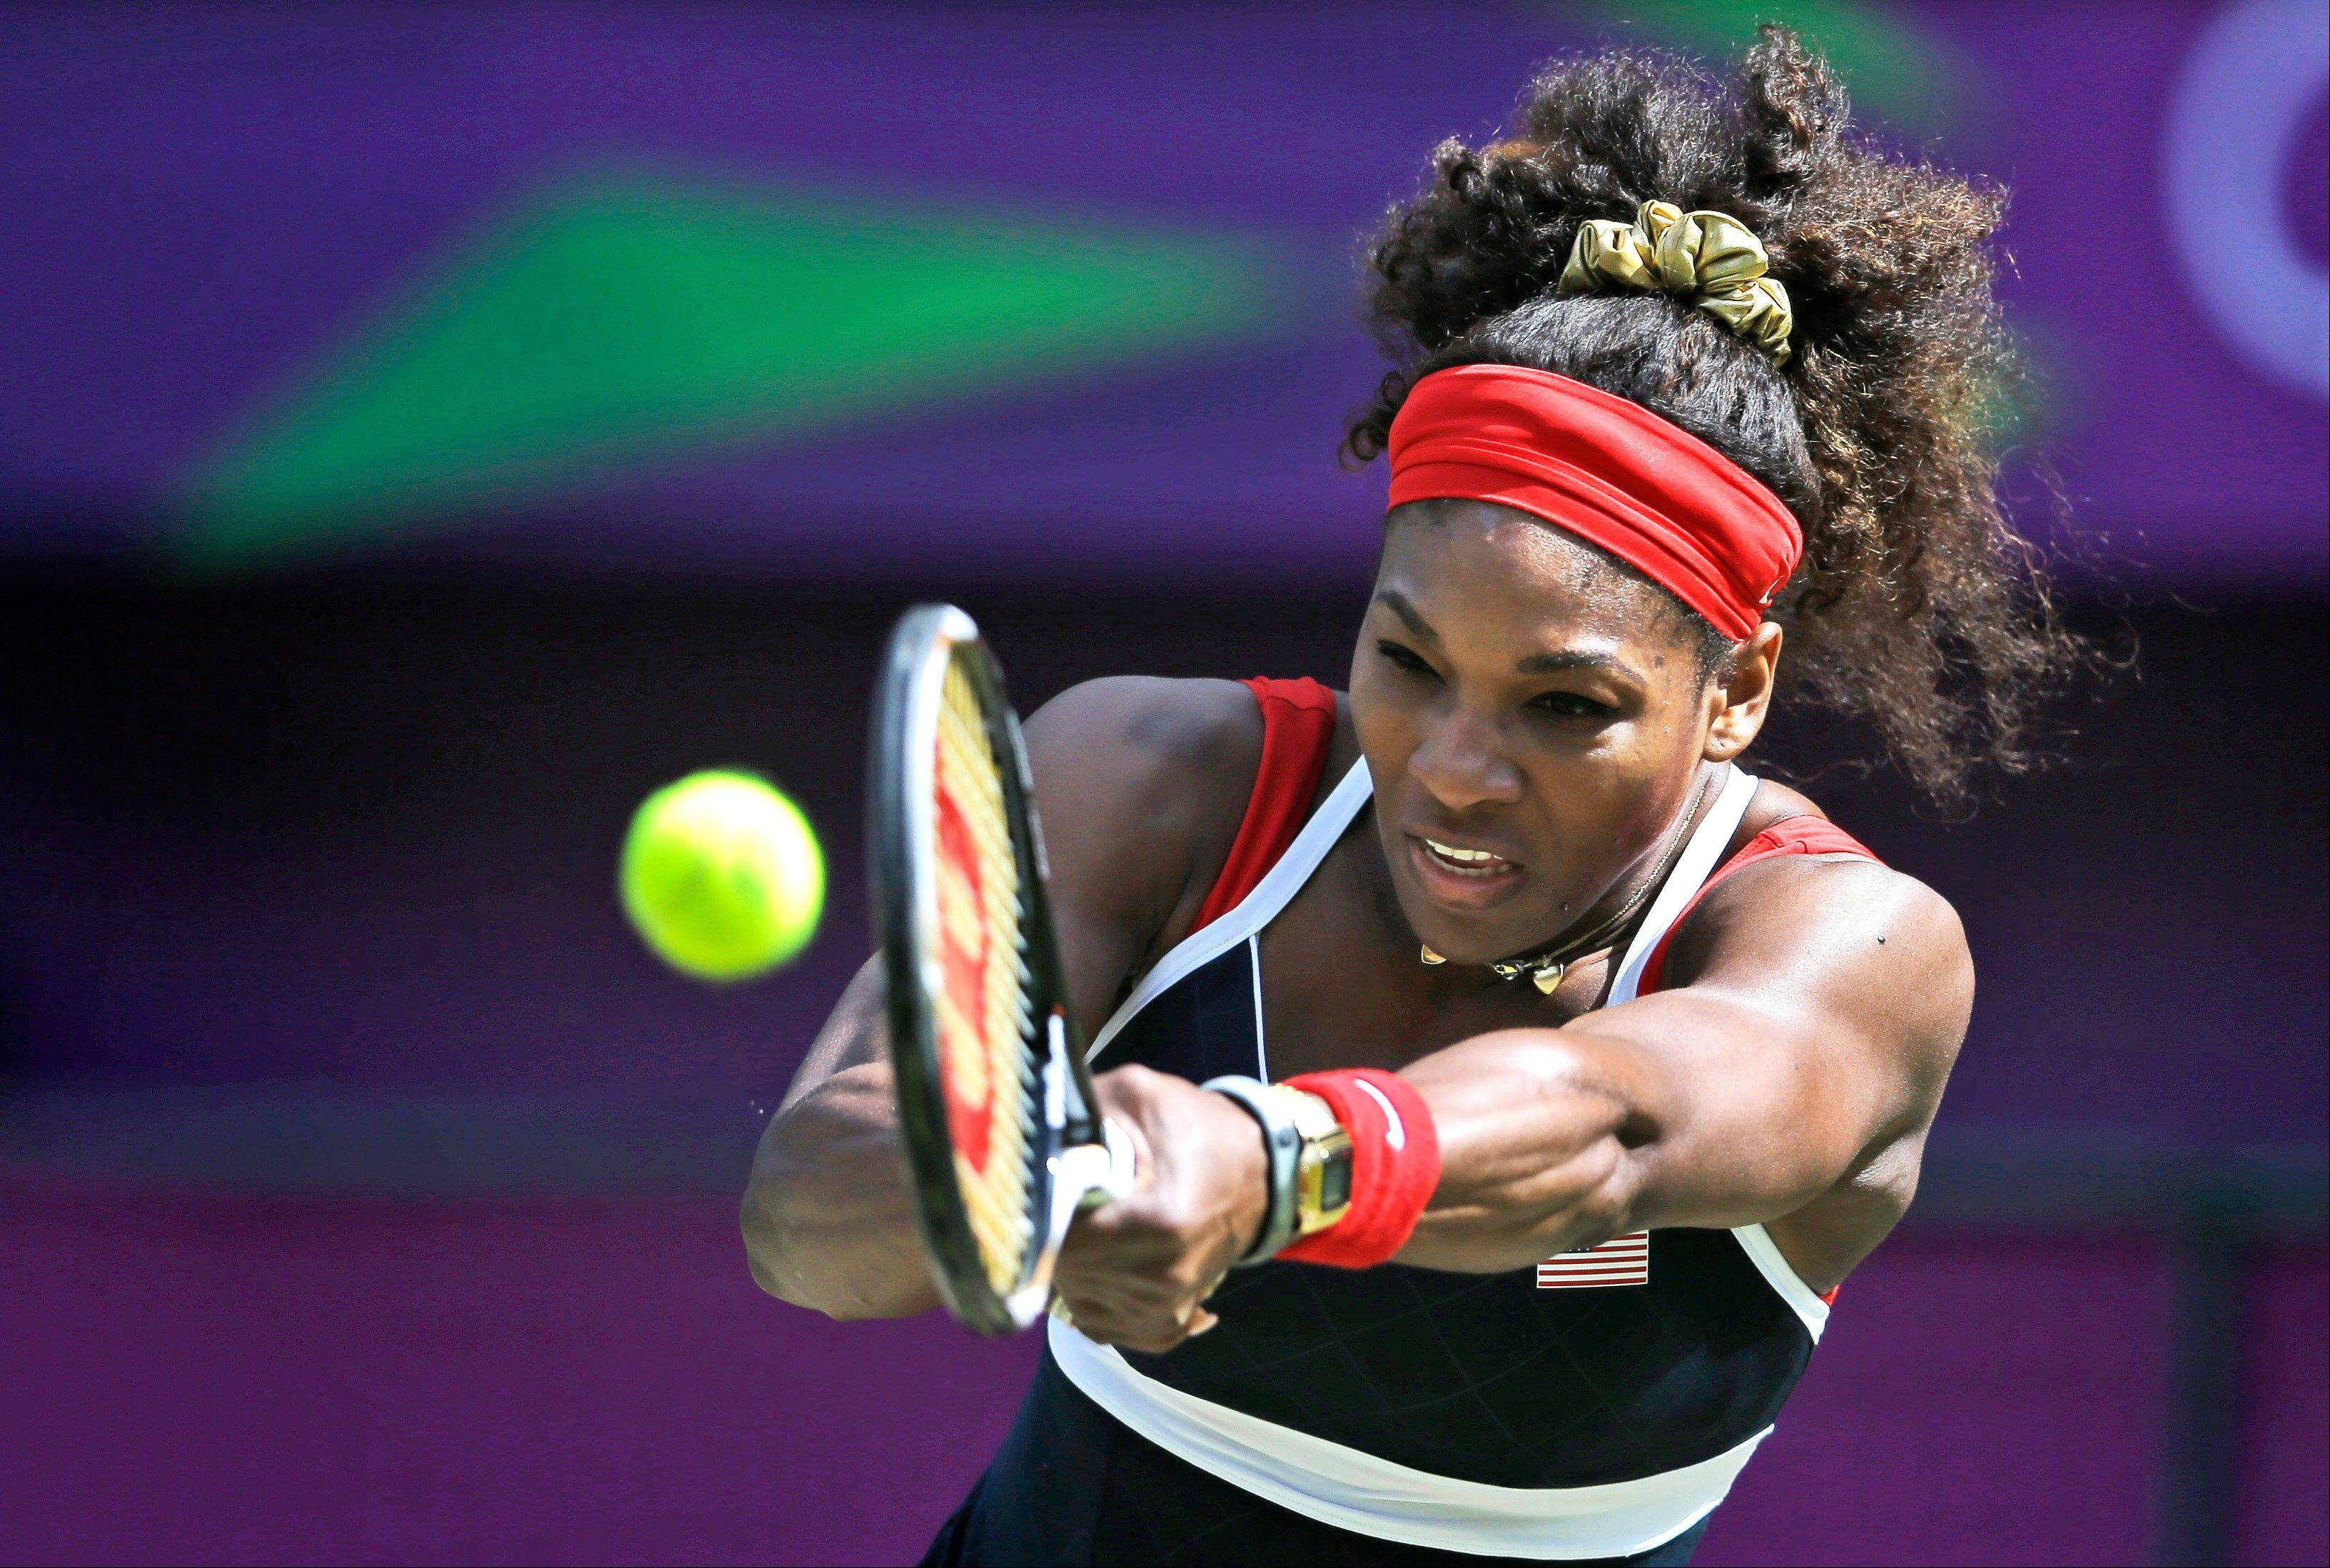 United States' Serena Williams returns a shot to Maria Sharapova of Russia in the women's singles gold medal match at the All England Lawn Tennis Club at Wimbledon, in London, at the 2012 Summer Olympics, Saturday, Aug. 4, 2012.